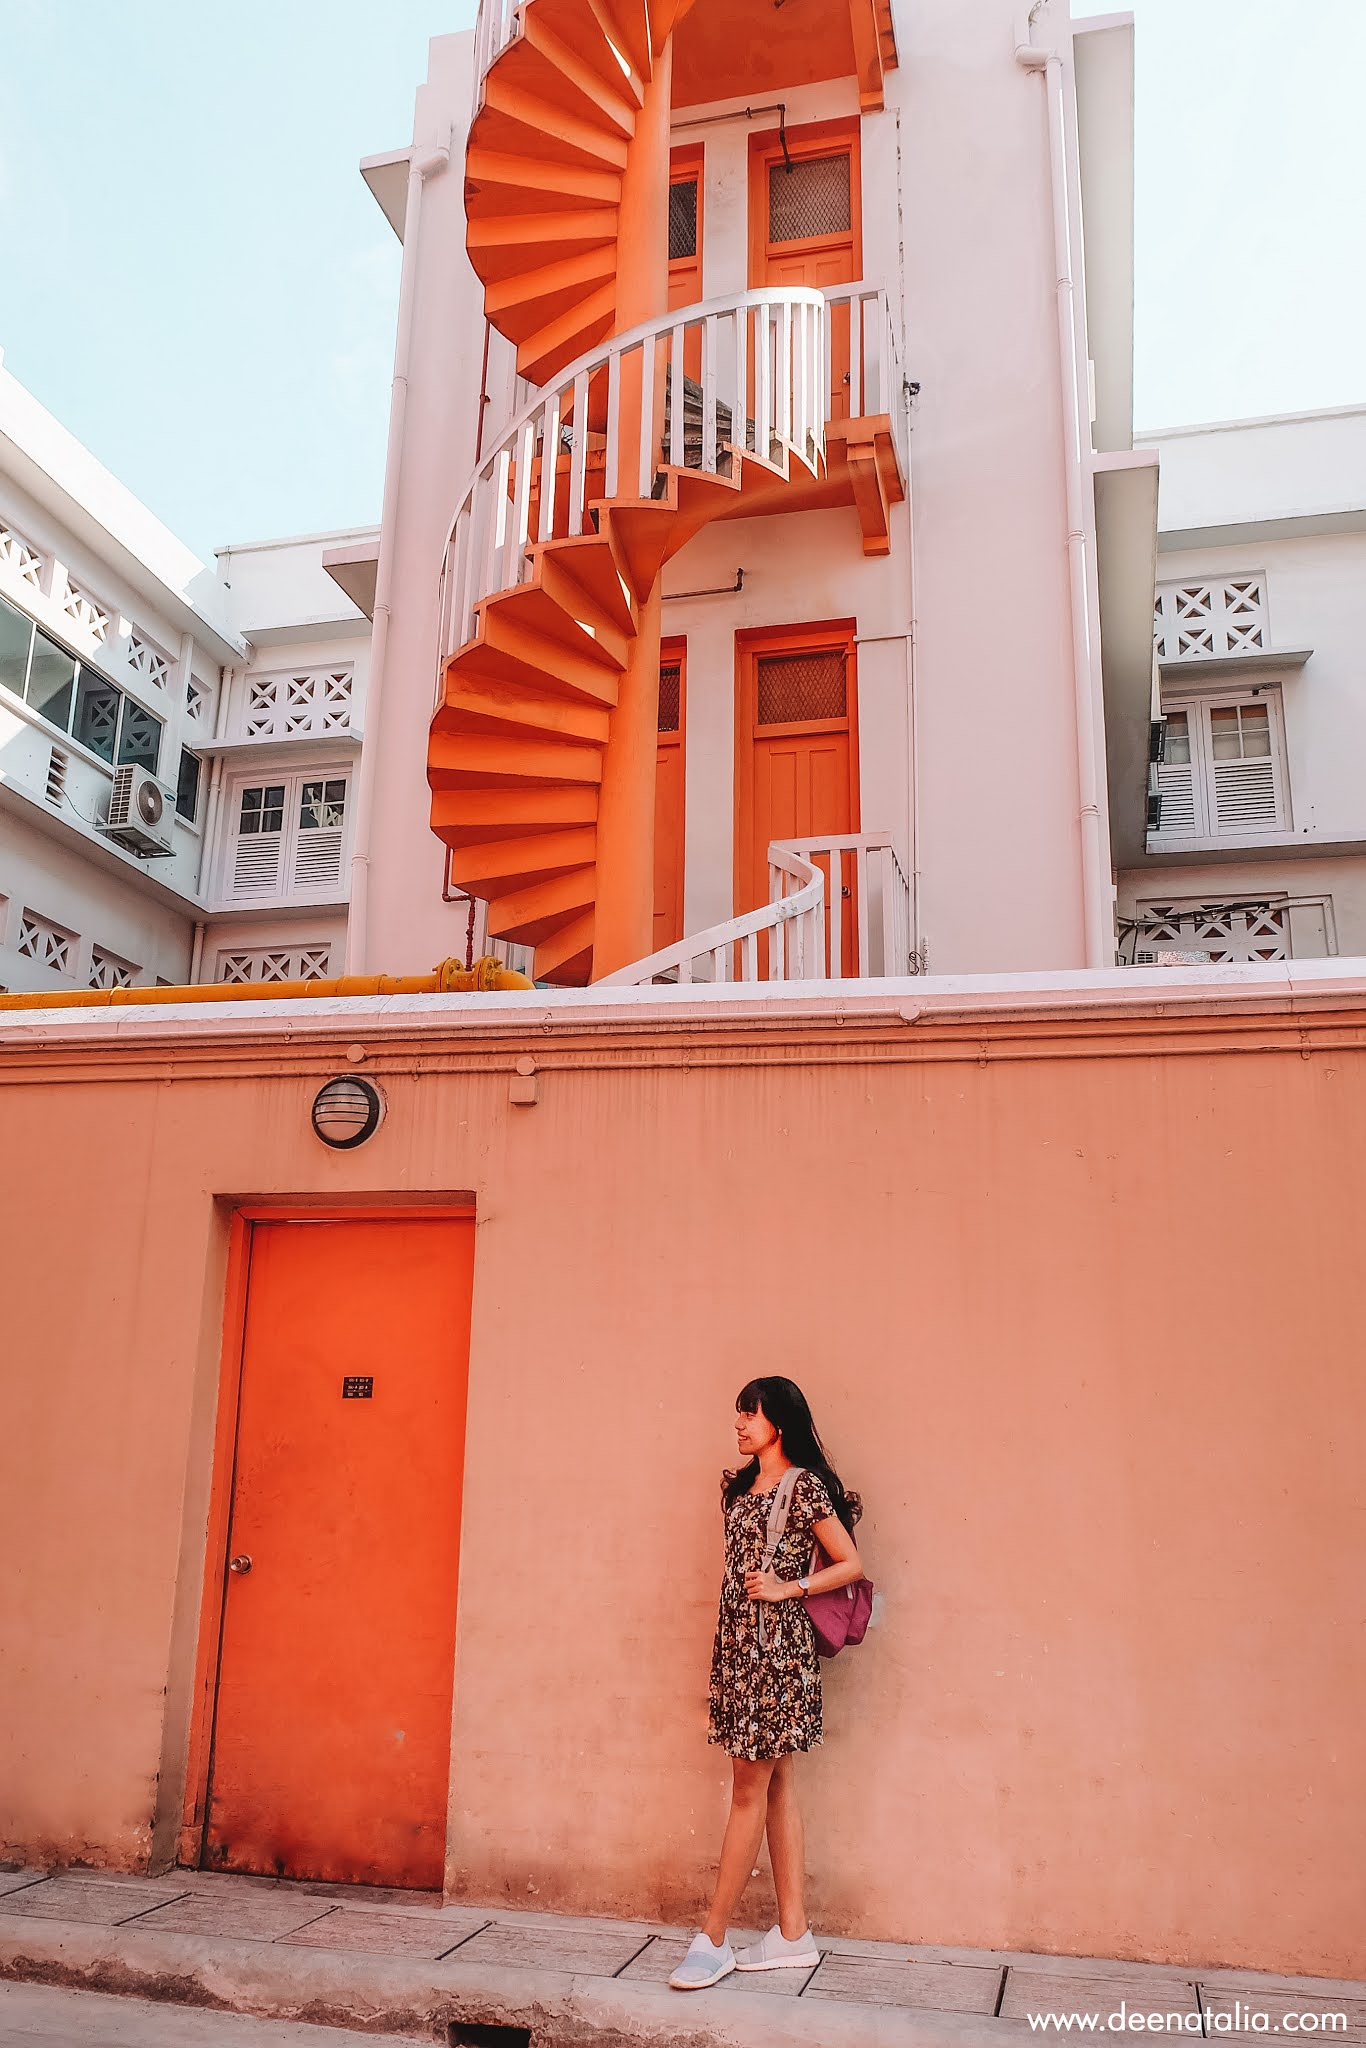 Bugis Colorful Spiral Staircases